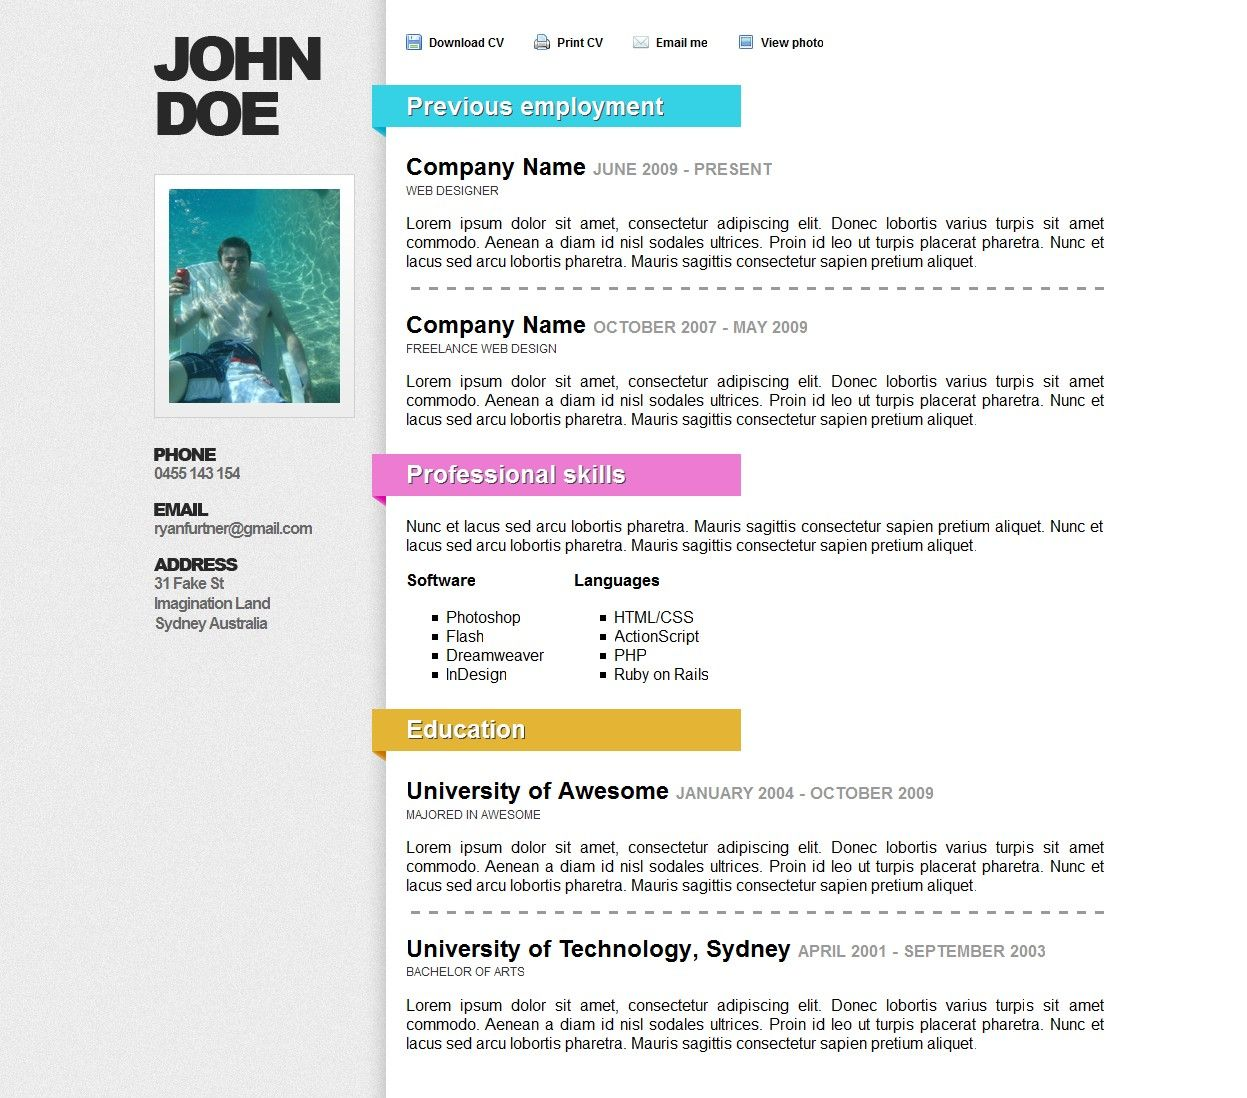 Awesome Online ResumeCV Site Templates ThemeForest JkT4bZoi